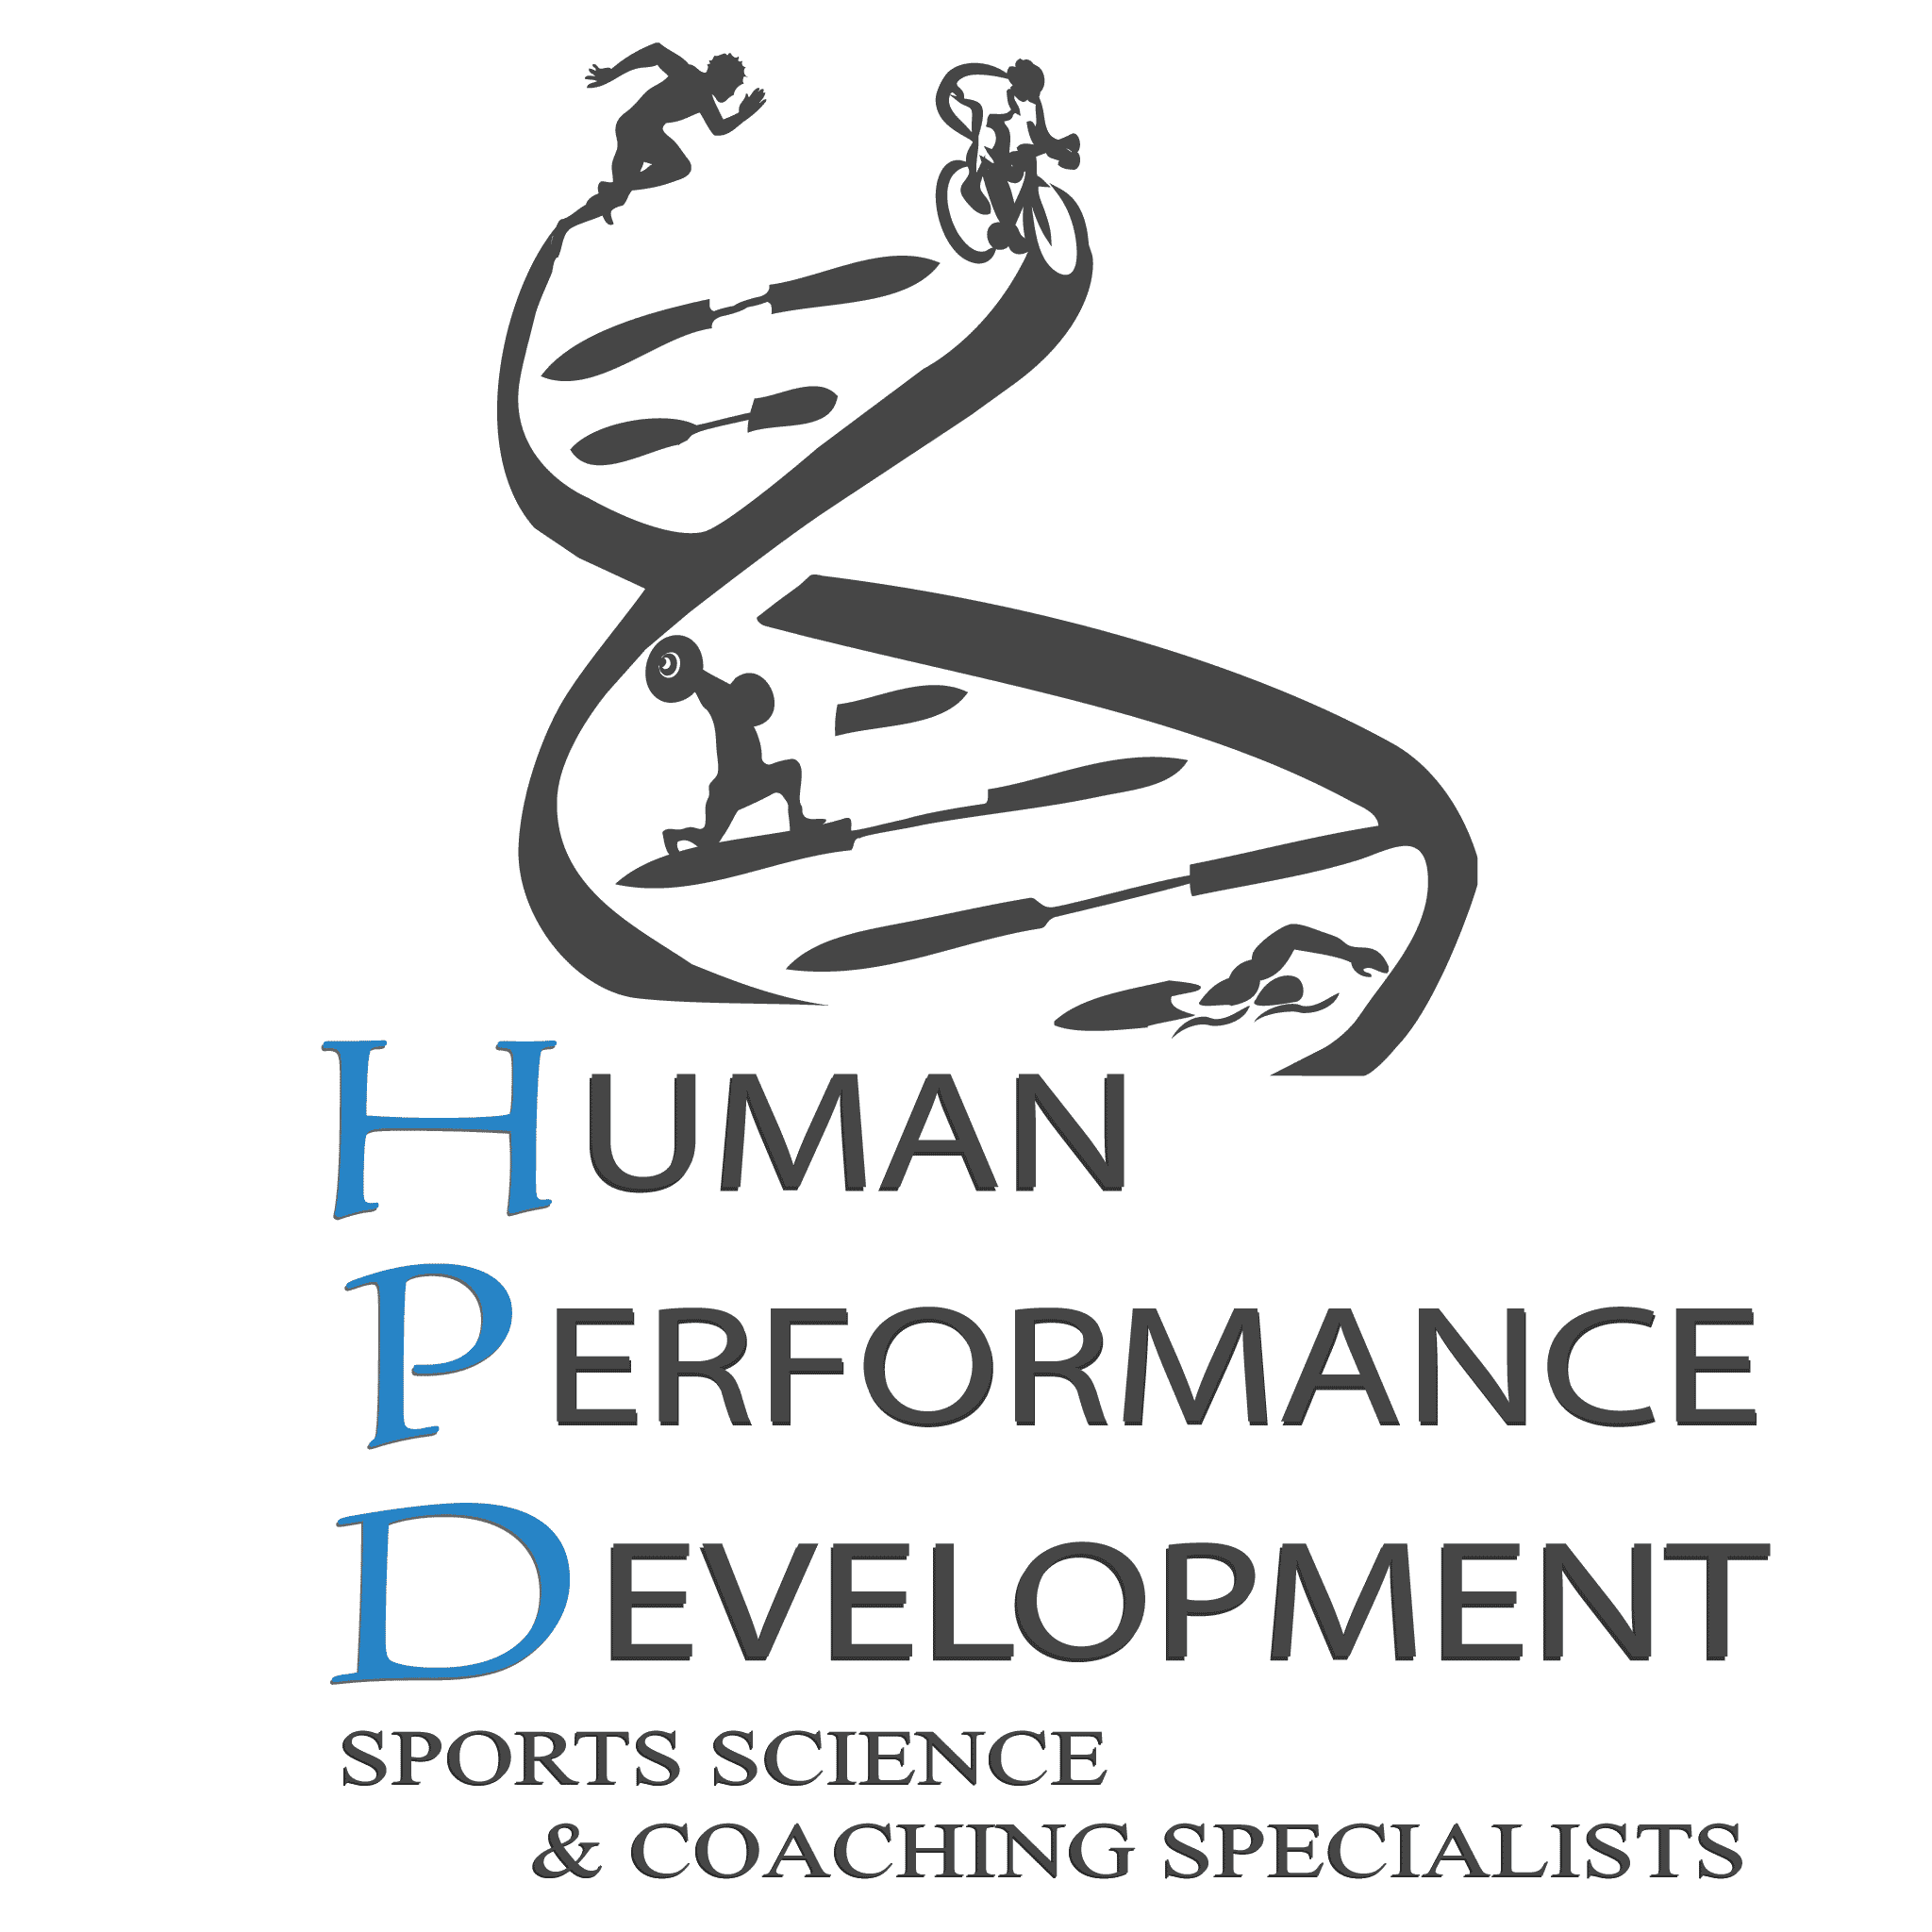 Human Performance Development Logo